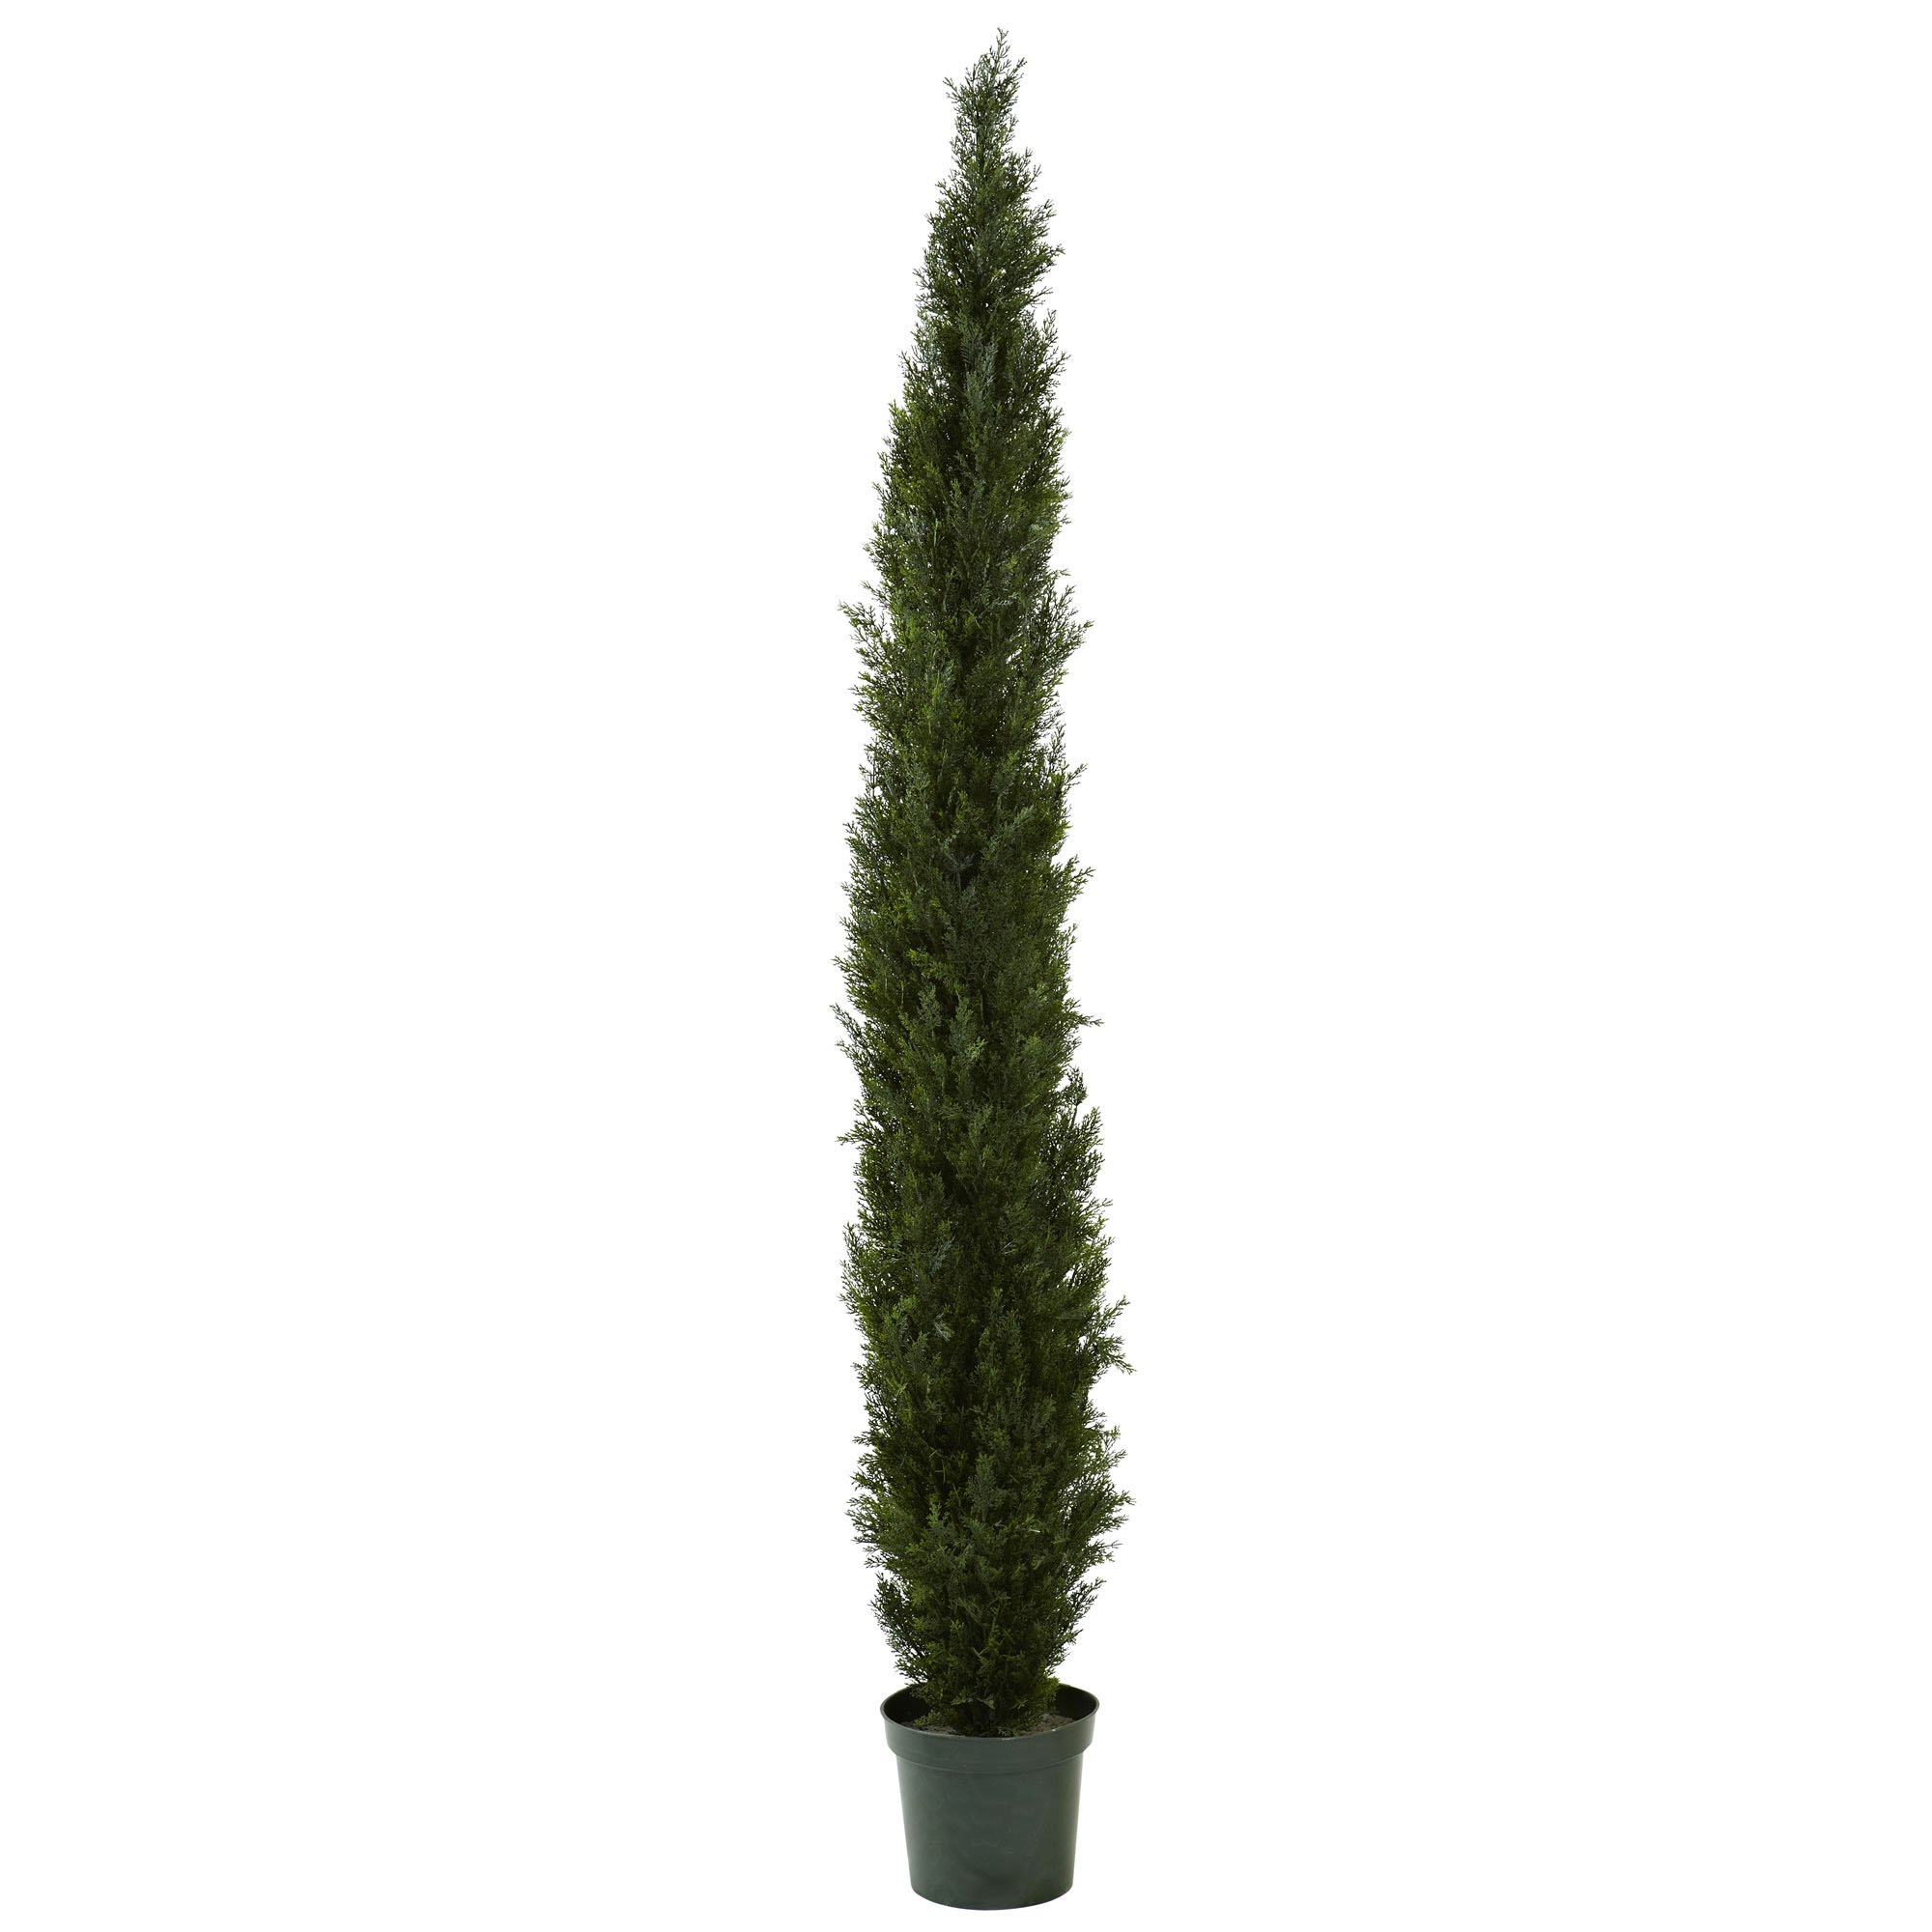 High-class Slim Cedar Pine Tree Potted Not Uv Protected  Product Photo